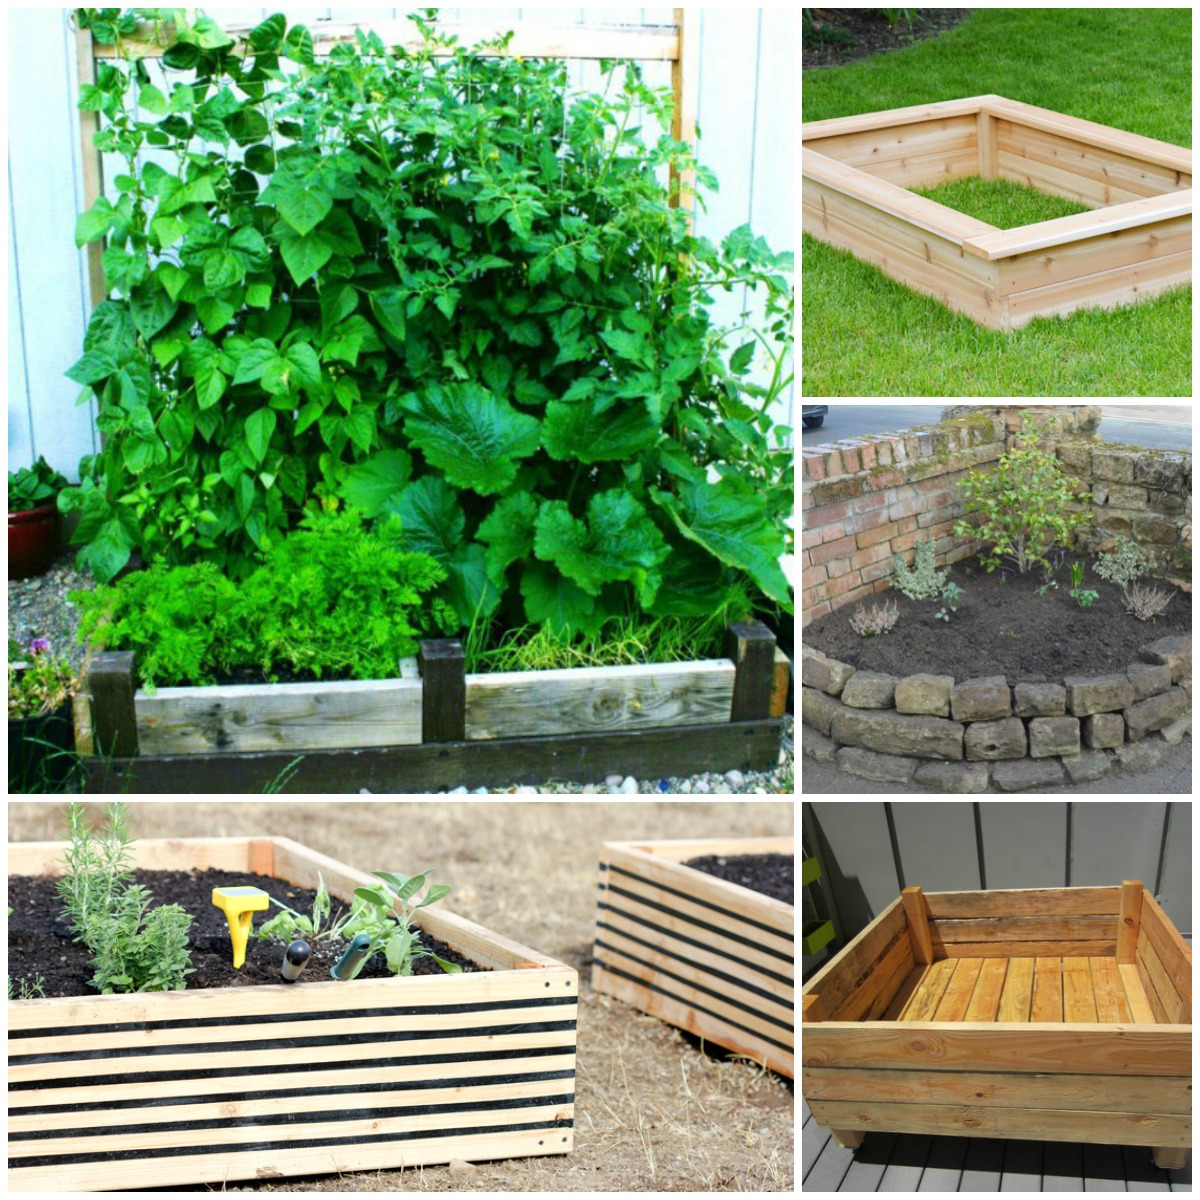 20 Brilliant Raised Garden Bed Ideas You Can Make In A ... on raised desk designs, raised garden box designs, raised garden lighting, raised wood designs, raised garden planter designs, raised garden trellis designs, raised garden accessories, raised garden bed designs, raised fireplace designs,